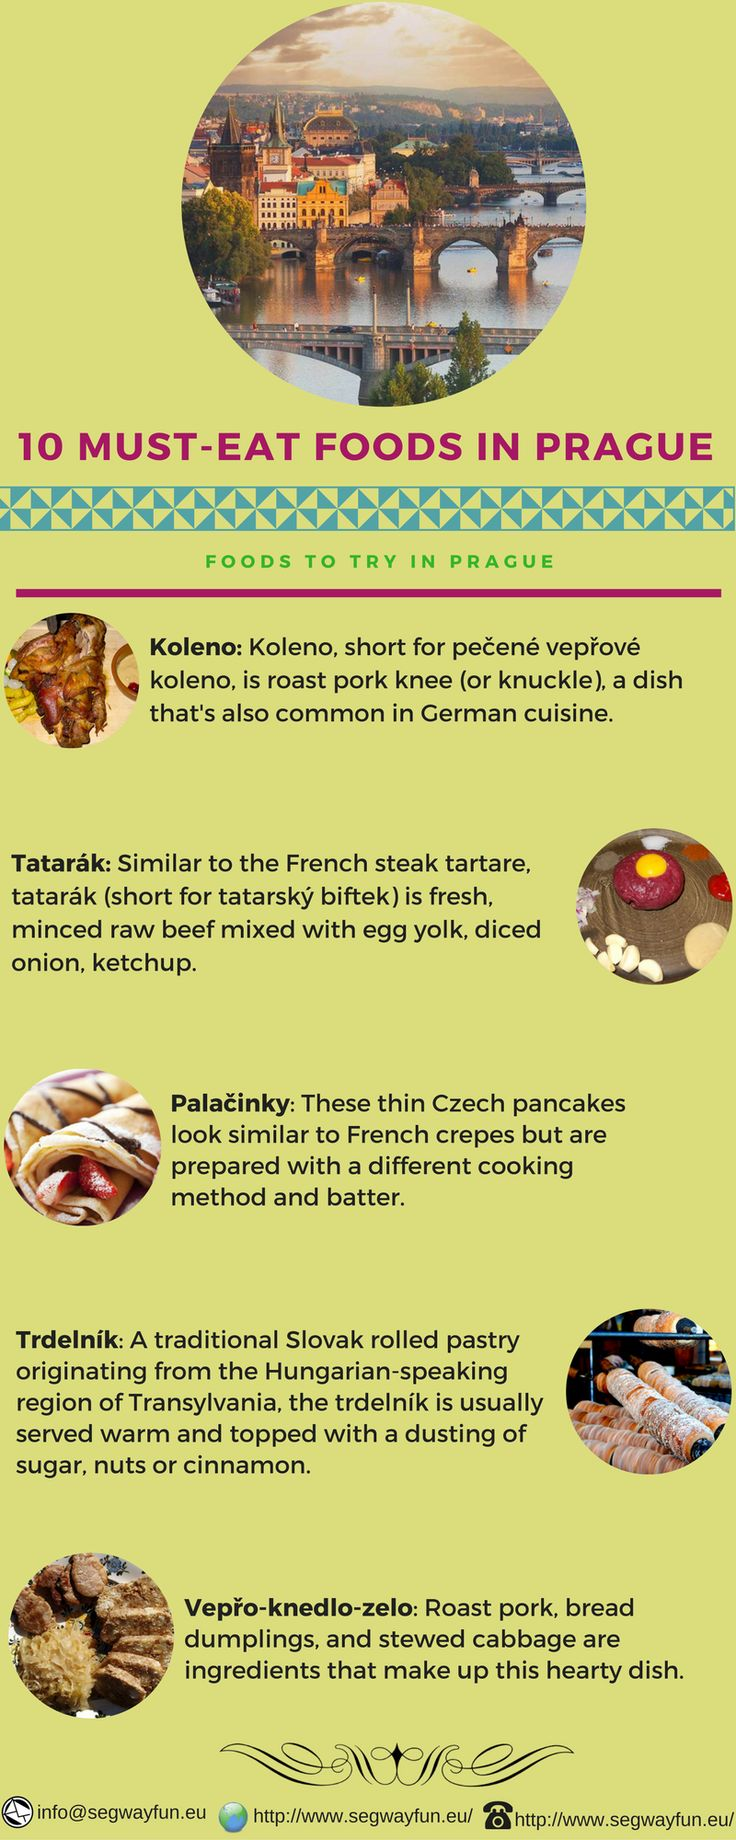 Know the various delicious foods in Prague. #Praguecitytour